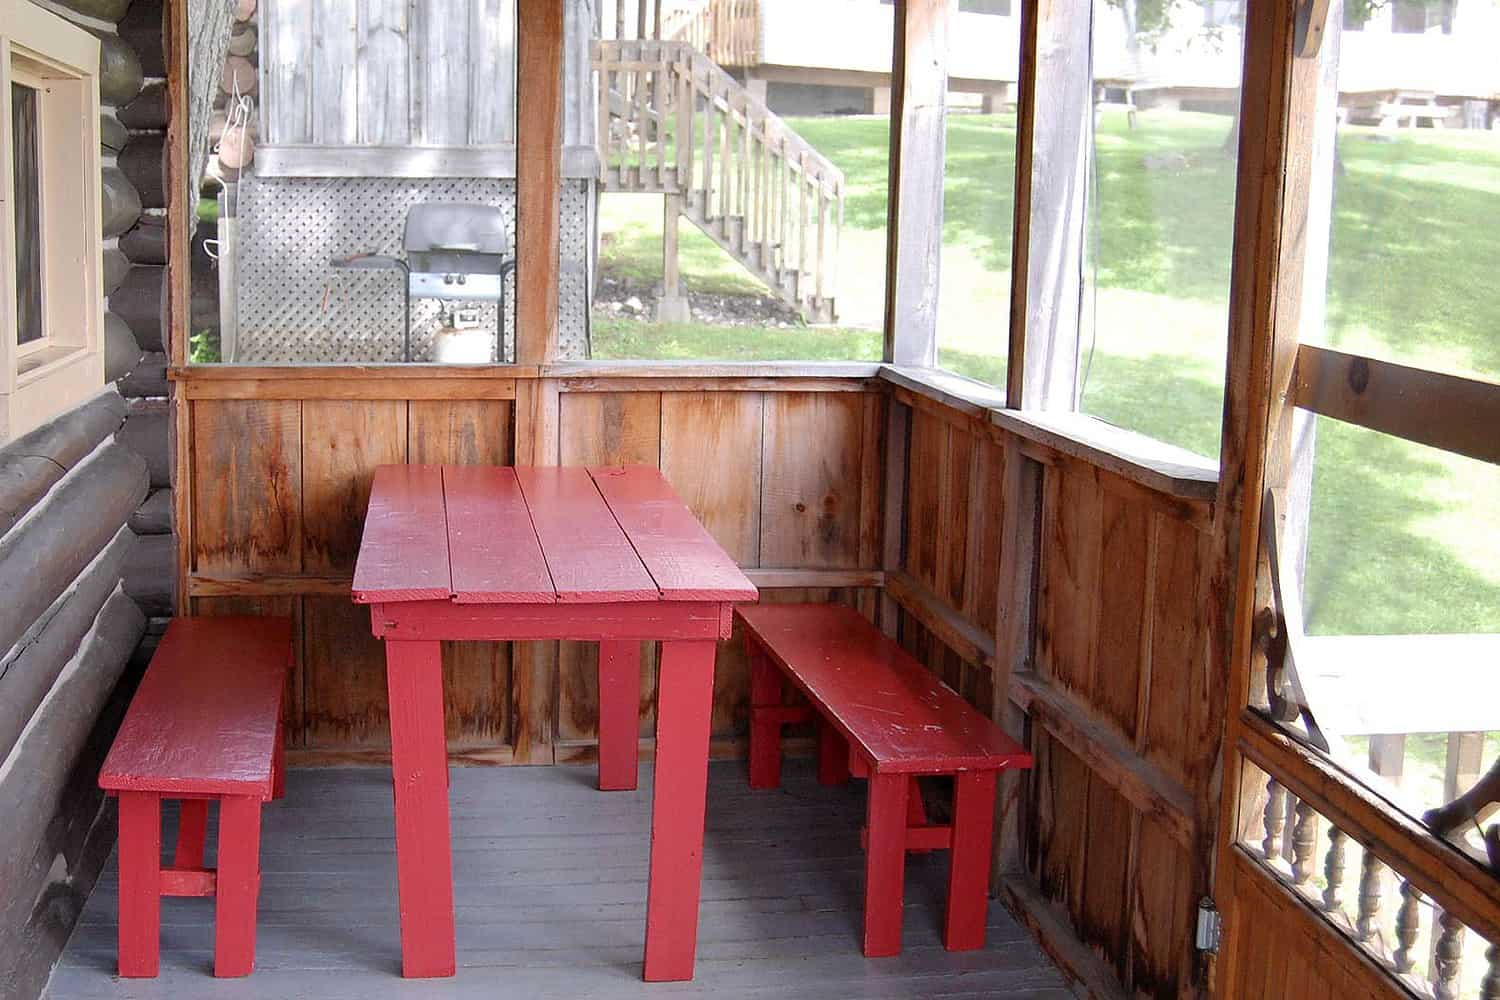 Interior of Screened Porch, Log Cabin 7